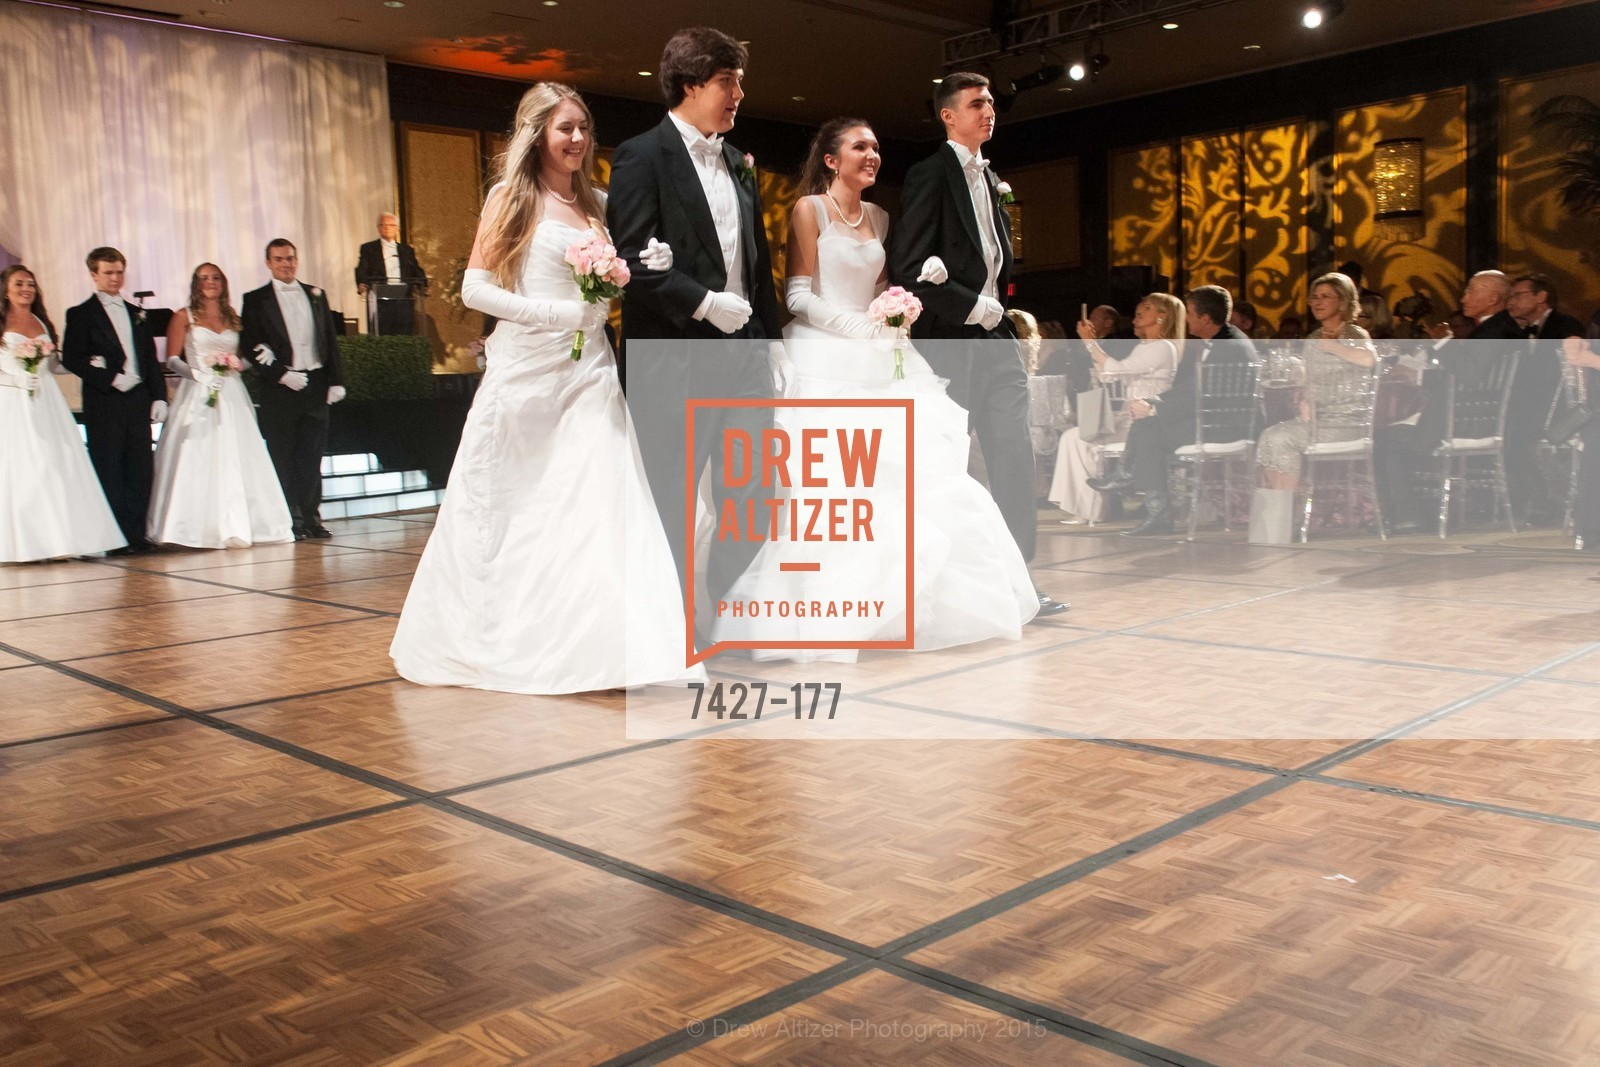 Extras, The 2015 San Francisco Debutante Ball, June 20th, 2015, Photo,Drew Altizer, Drew Altizer Photography, full-service event agency, private events, San Francisco photographer, photographer California